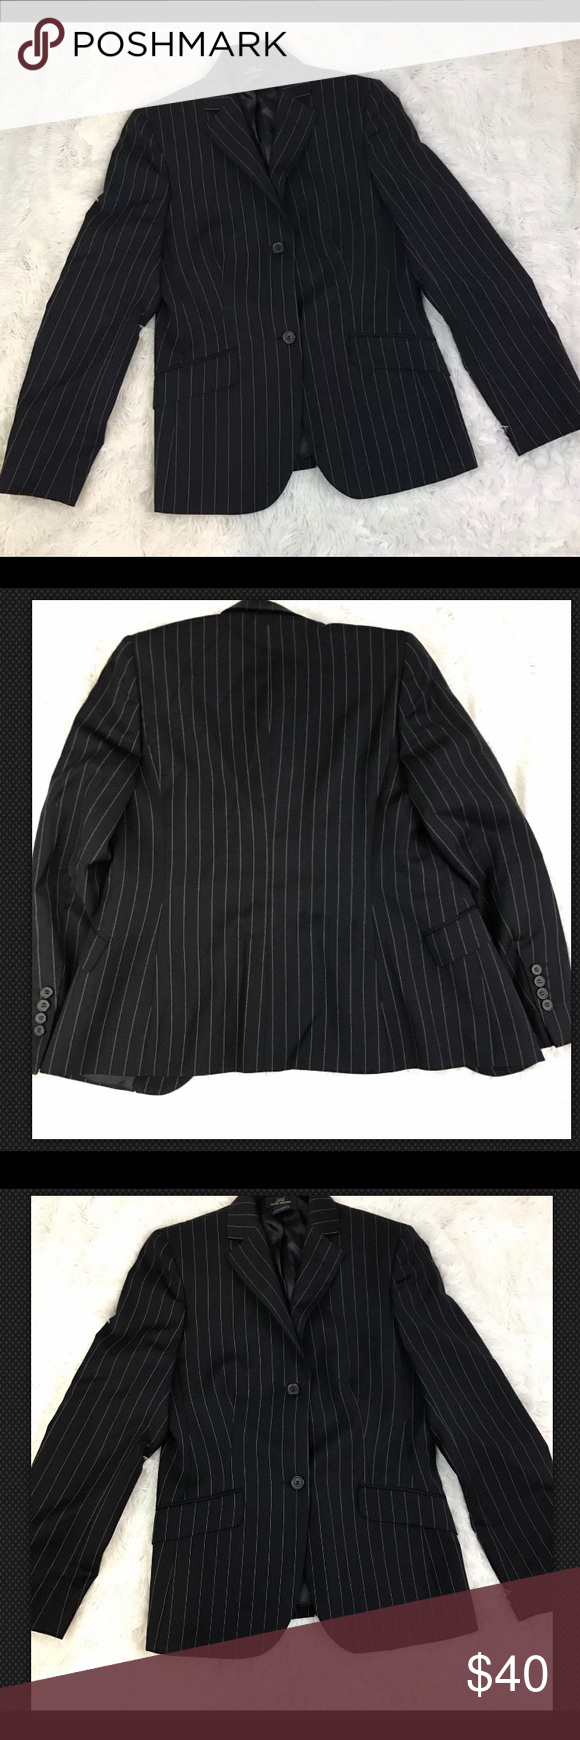 Brooks Brothers Womens Blazer Size 4 Wool Brooks Brothers Womens Blazer Size 4 Wool Jacket Navy Blue Pinstripe. Condition: Pre-owned. No flaws. Features: Double button closure. Lined. Chest: 16 inches. Length: 26 inches. Sleeves: 23 inches. Shoulders: 14 inches Brooks Brothers Jackets & Coats Blazers